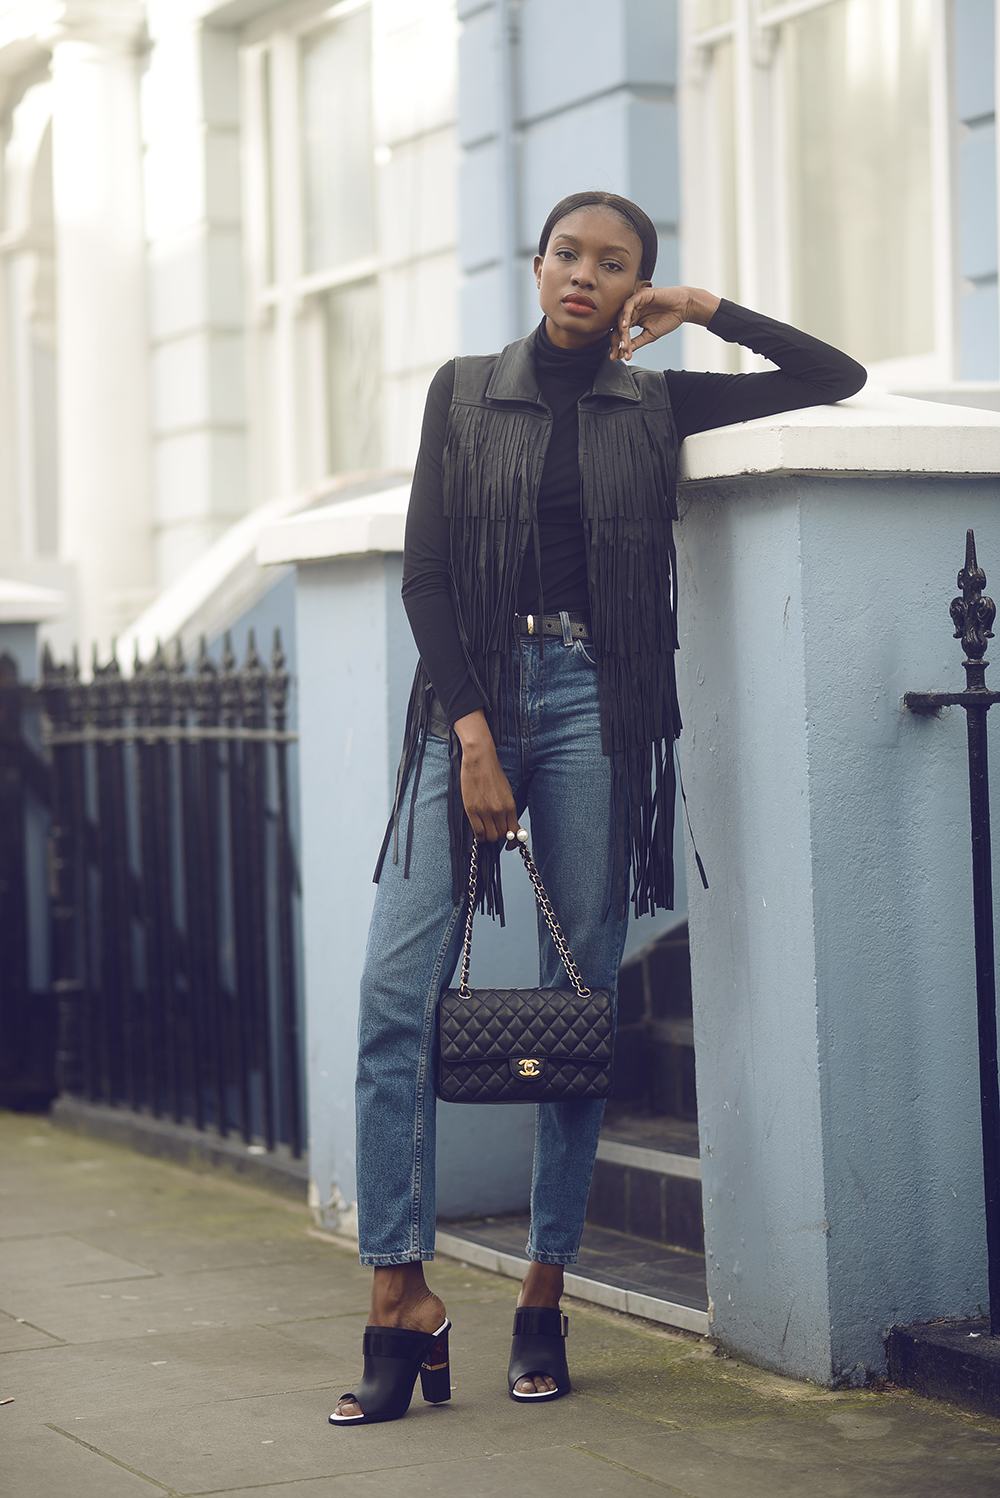 Fringe Fashion Trend: Natasha Ndlovu is wearing a SuperTrash black fringed vest